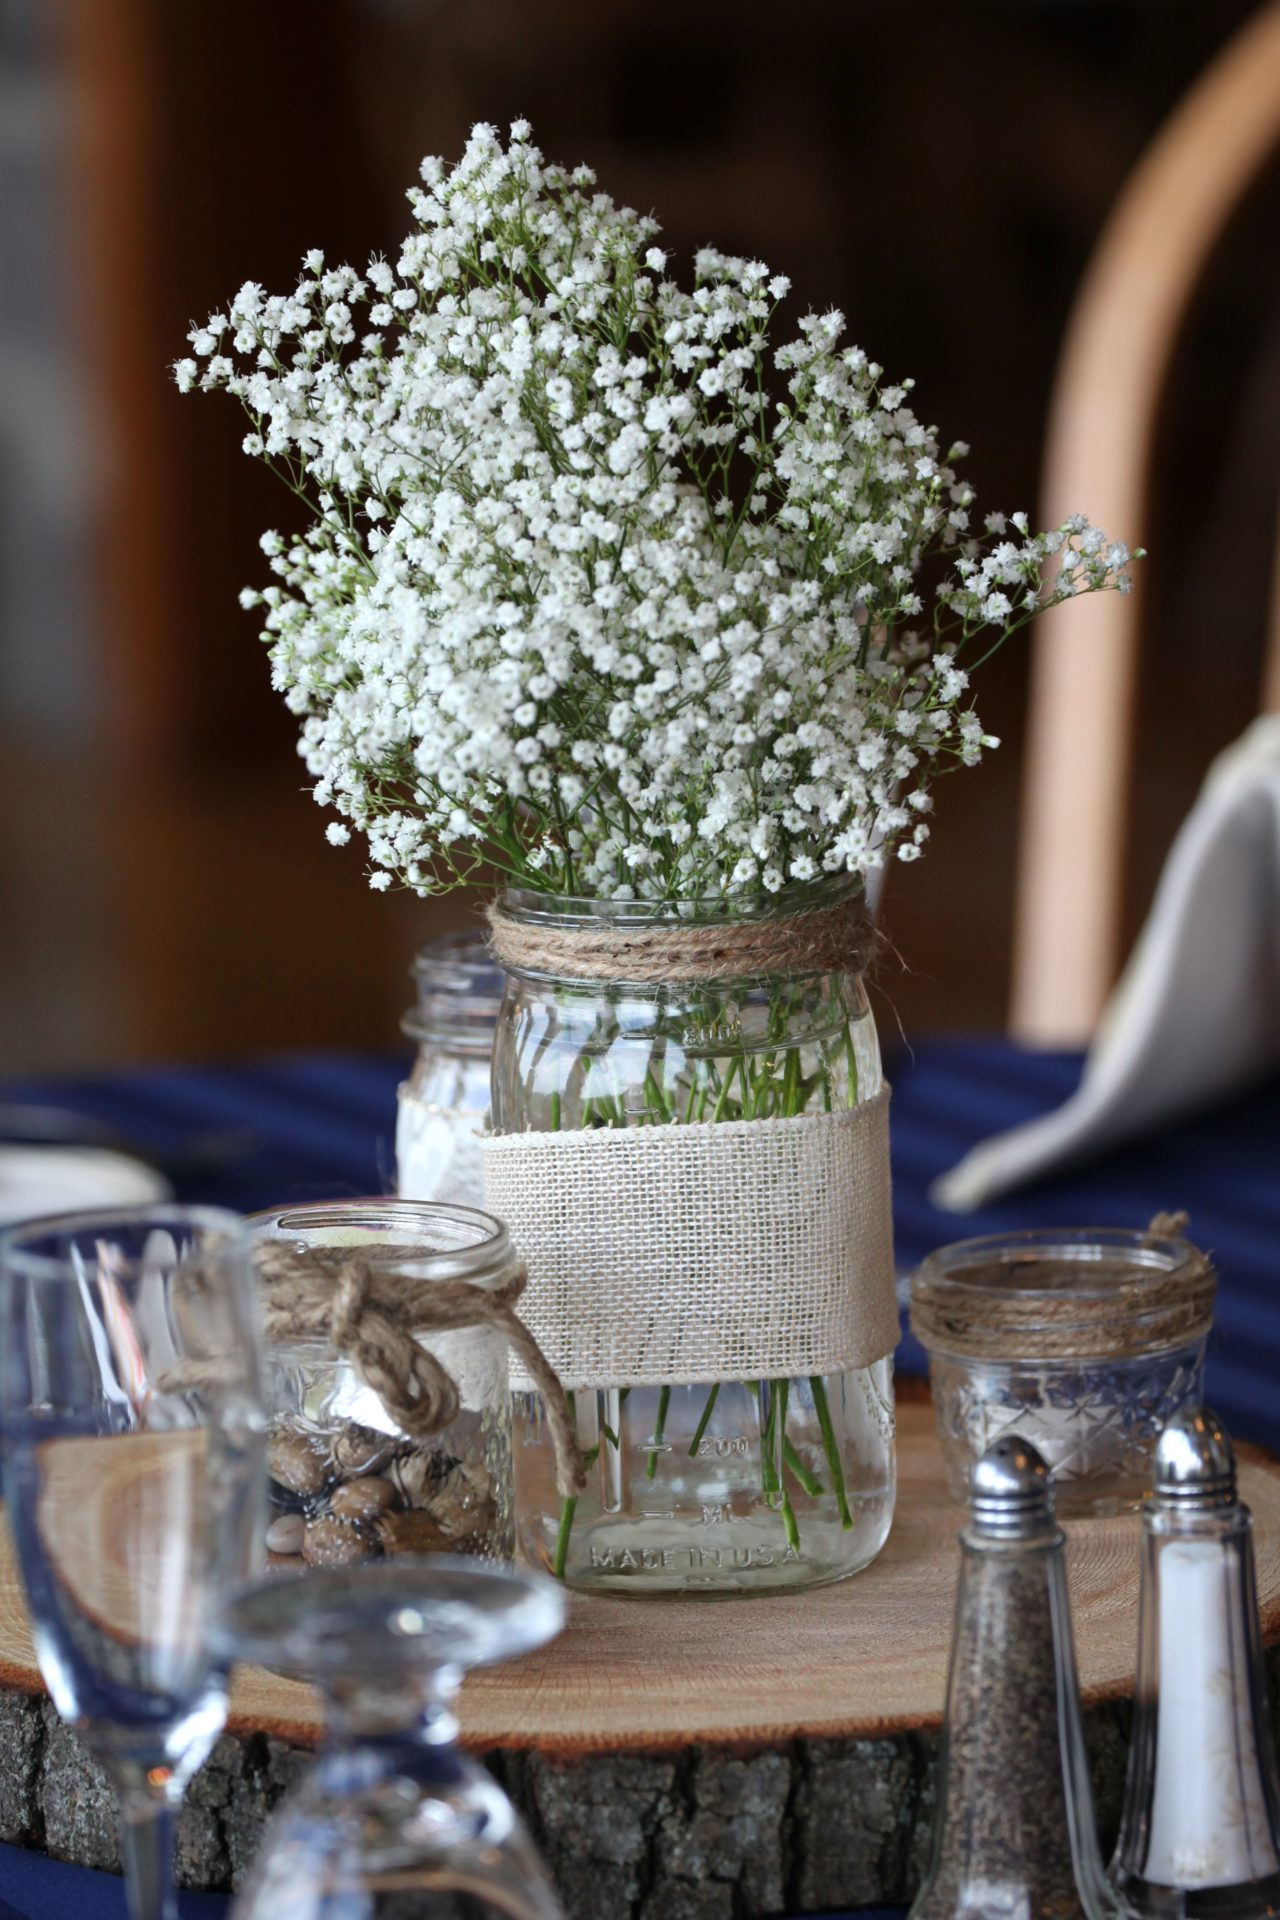 Rustic wedding centerpiece with jar and baby's breath flowers